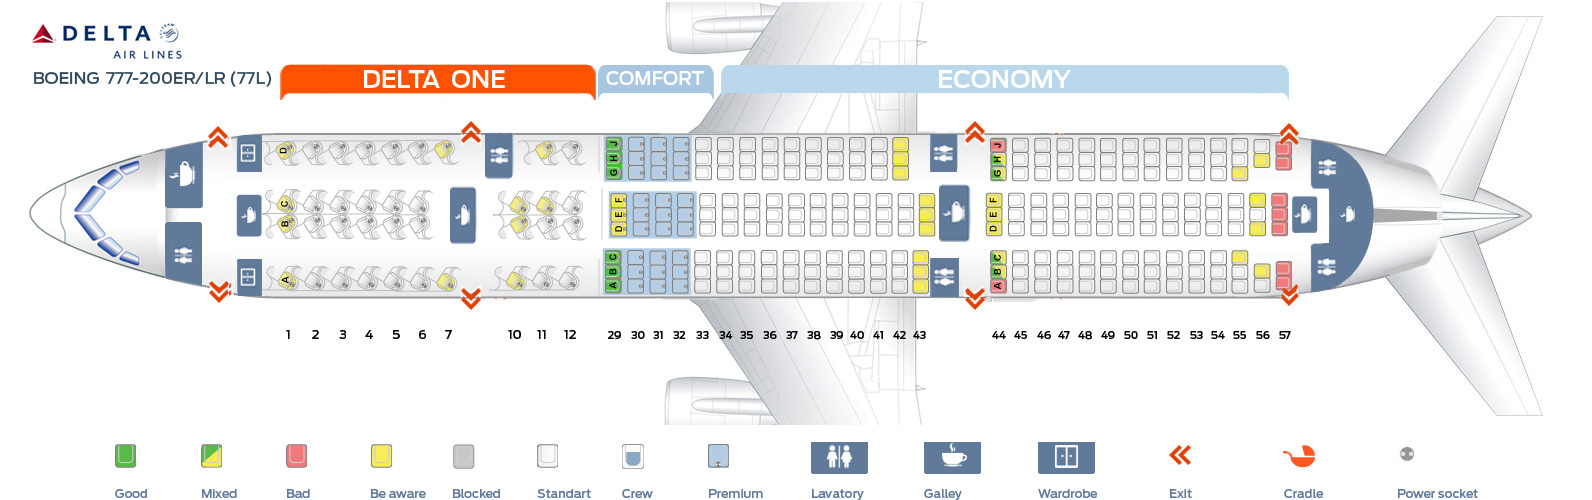 Seat_map_Delta_Airlines_Boeing_777_200